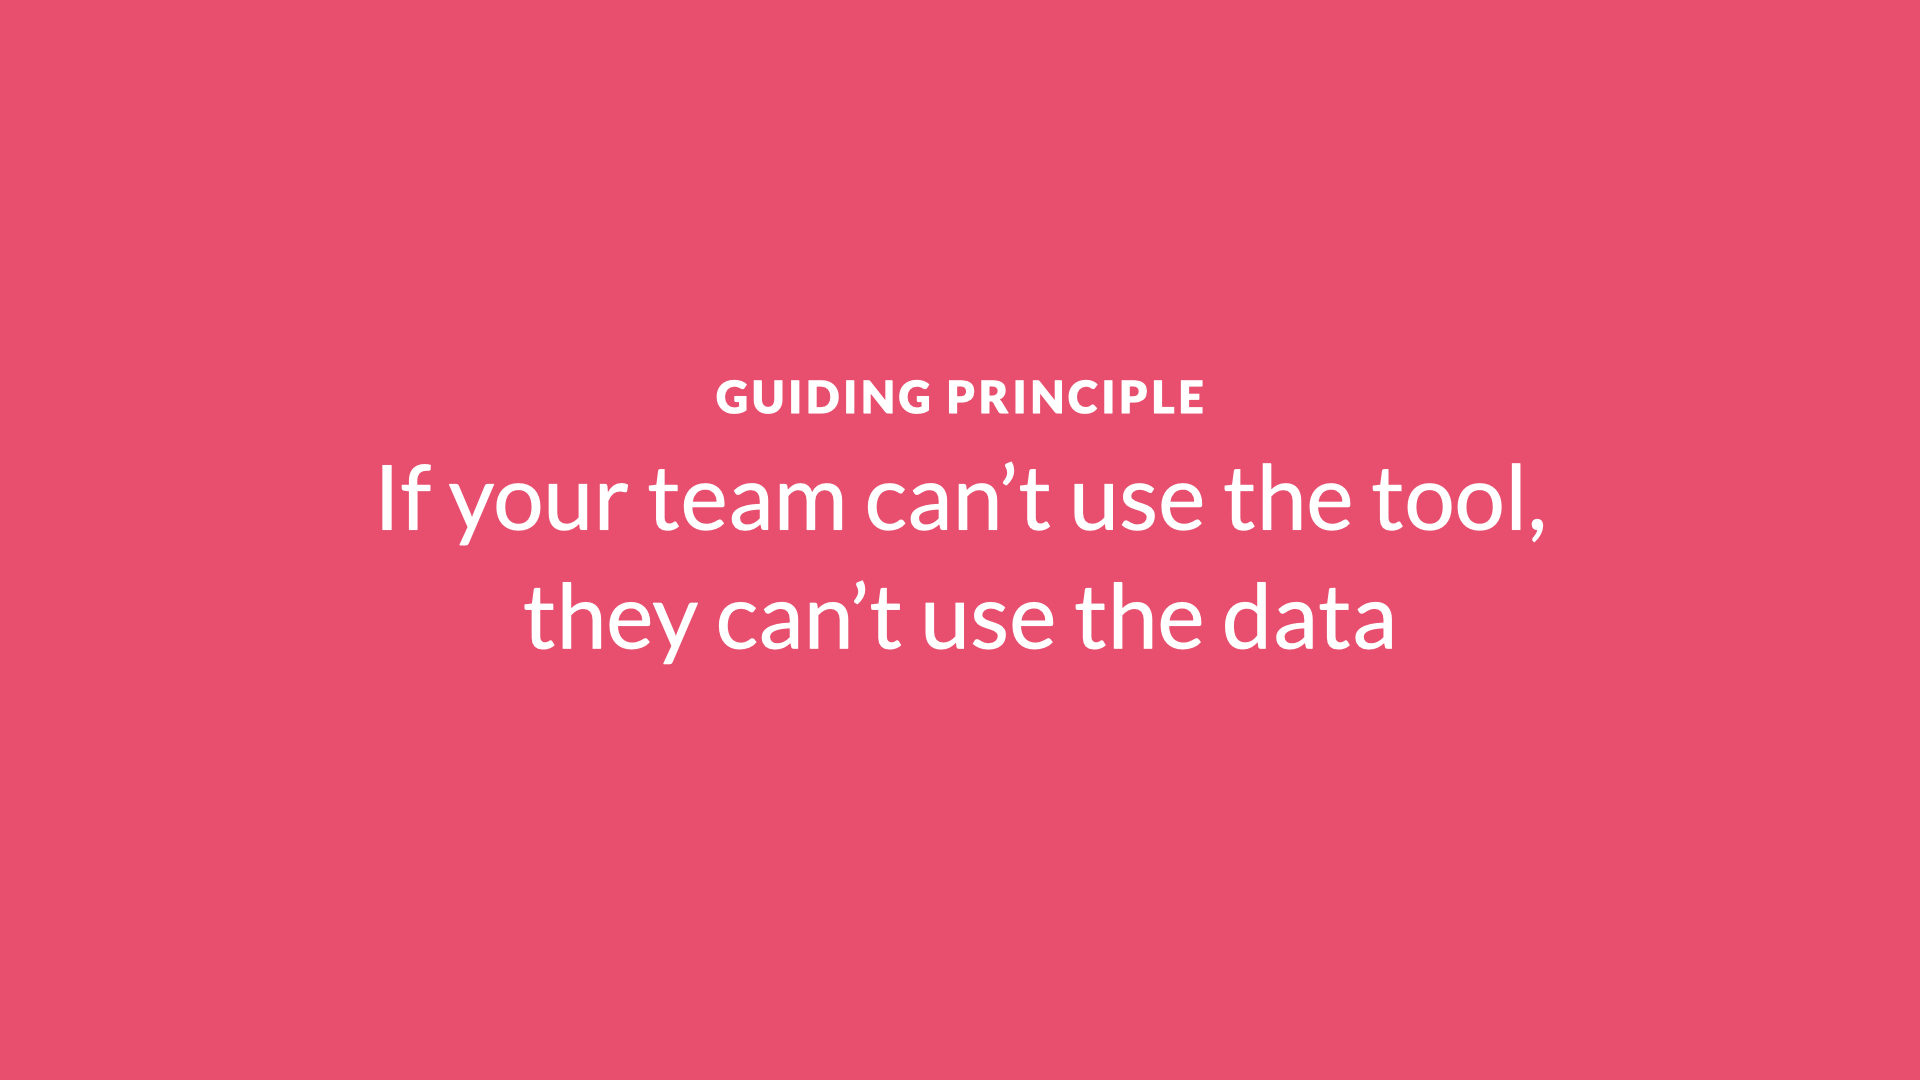 If your product team can't use the tool, they can't use the data